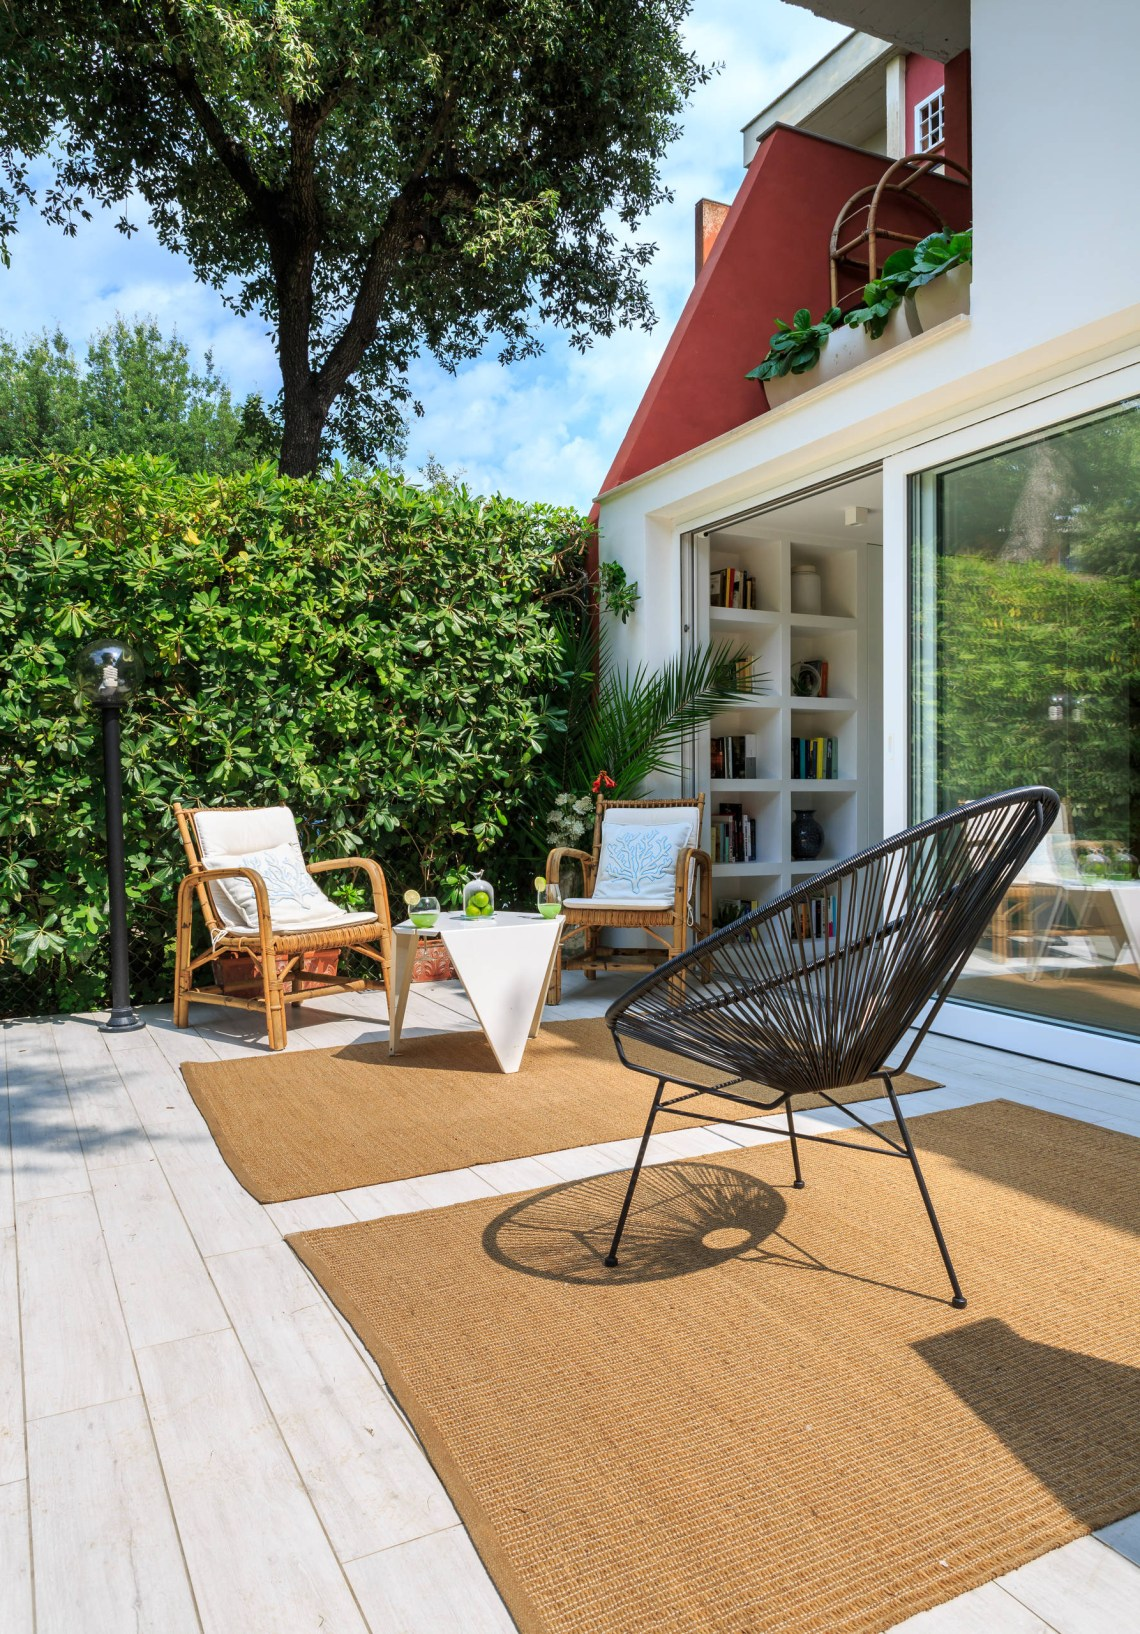 16 Stunning Modern Deck Designs That Will Extend Your Home